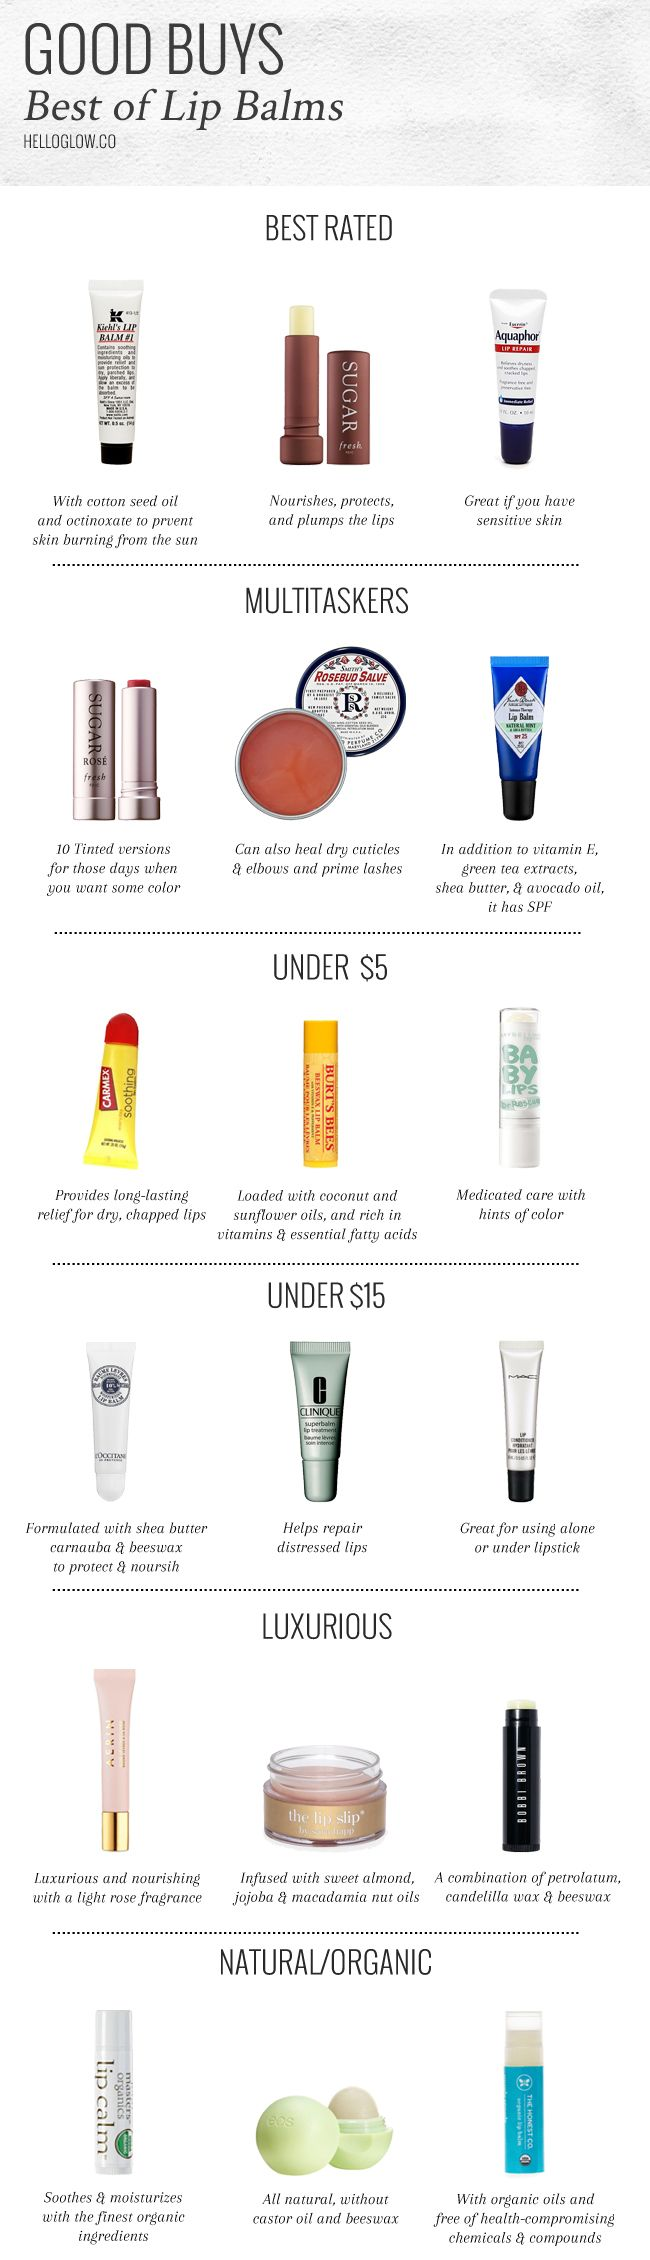 18 Best Lip Balms for Any Budget   HelloGlow.co